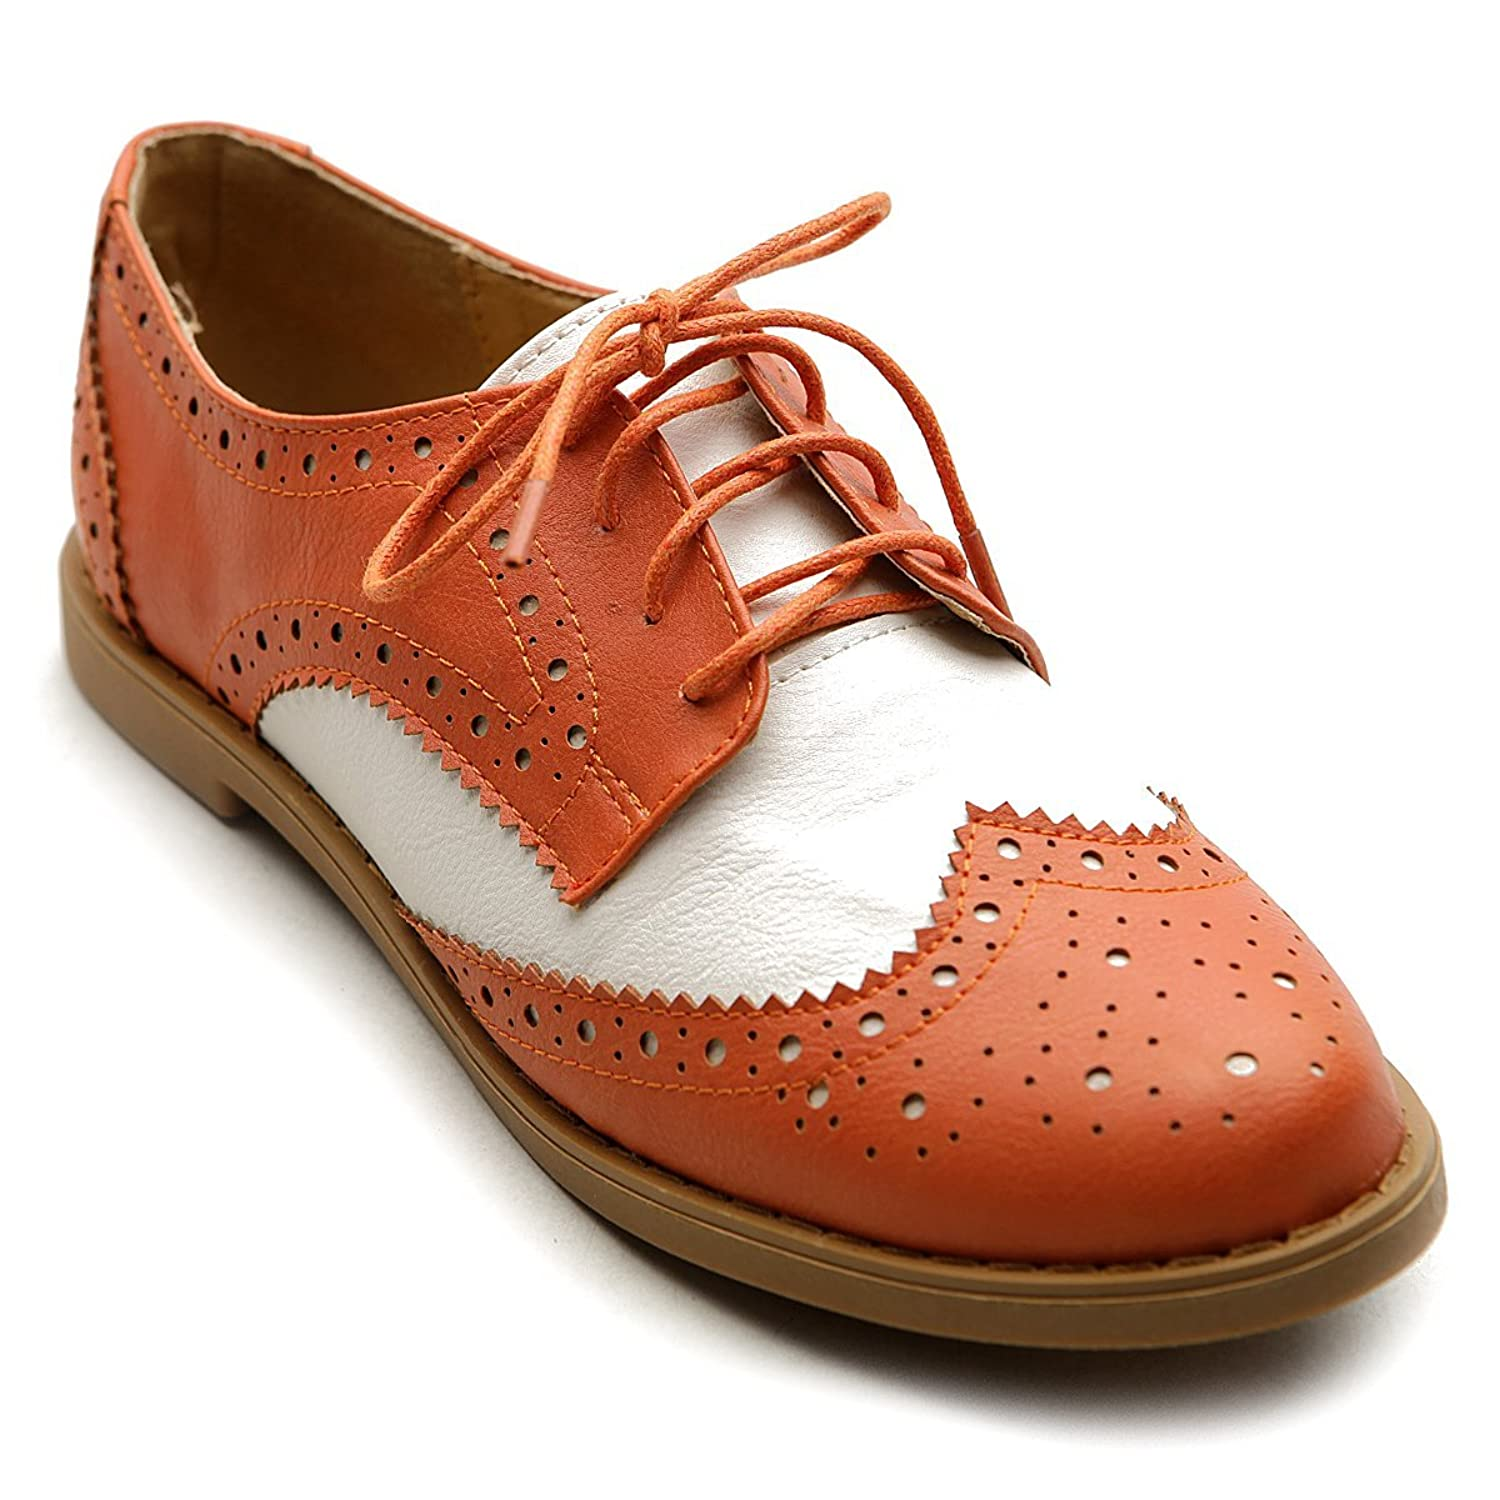 1940s Womens Shoe Styles Ollio Womens Flat Shoe Wingtip Lace Up Two Tone Oxford  AT vintagedancer.com